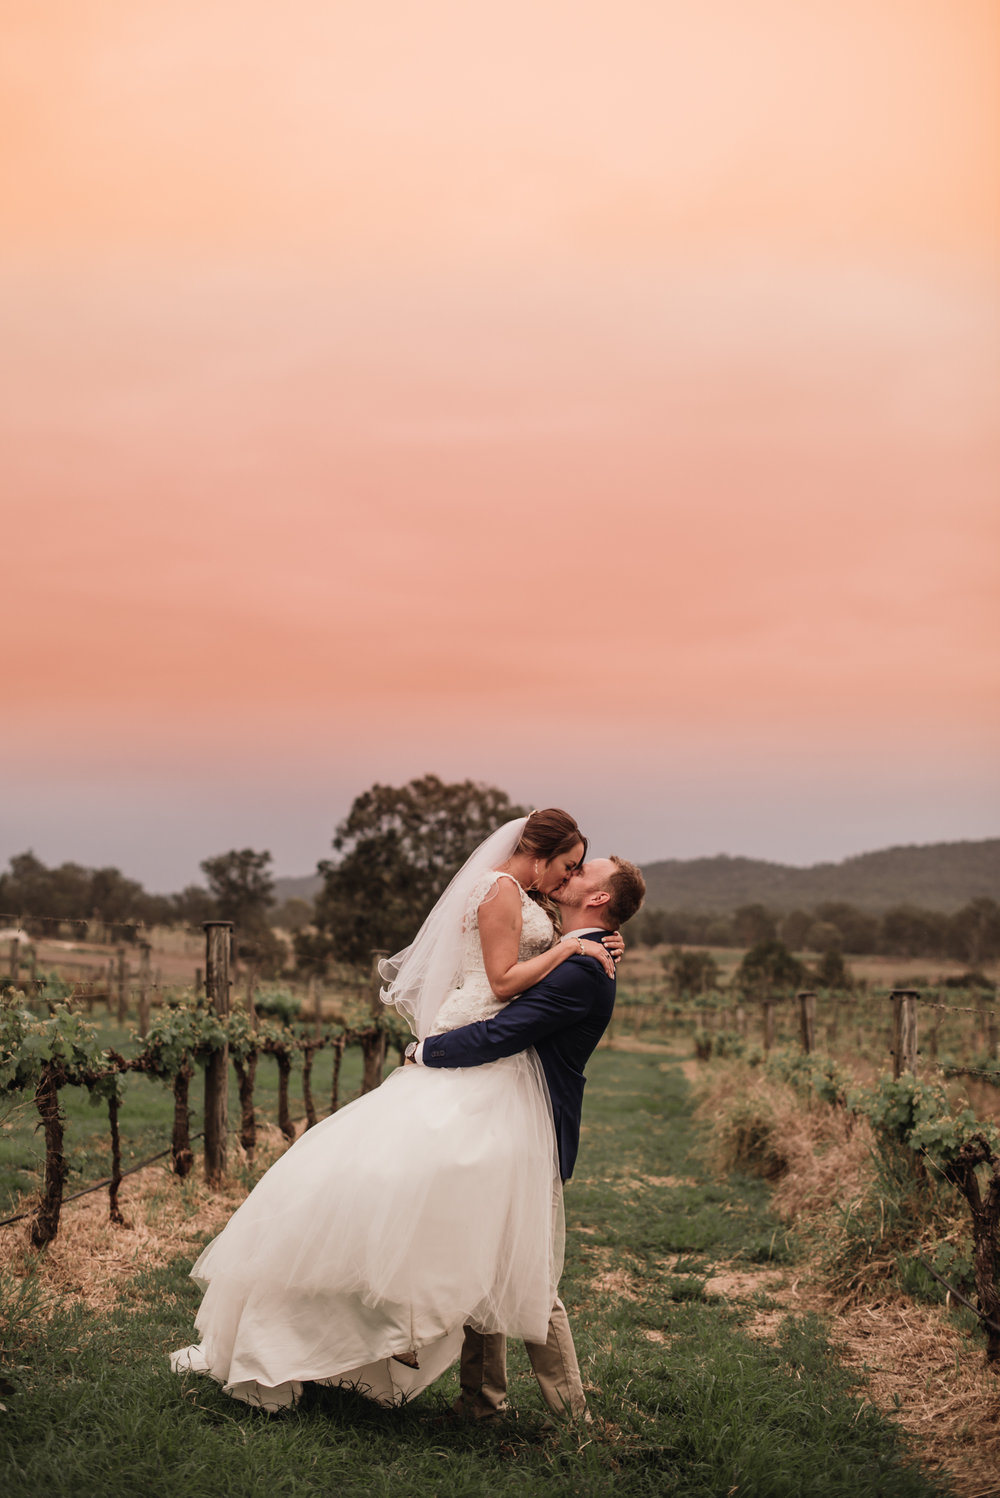 LOVELENSCAPES PHOTOGRAPHY • VISUAL POETRY • DESTINATION WEDDING PHOTOGRAPHER • BRISBANE WEDDING PHOTOGRAPHER • ALBER RIVER WINERY WEDDING • TAMBORINE MOUNTAIN WEDDING • 20171007 • MOBILE SIZE • 120.jpg